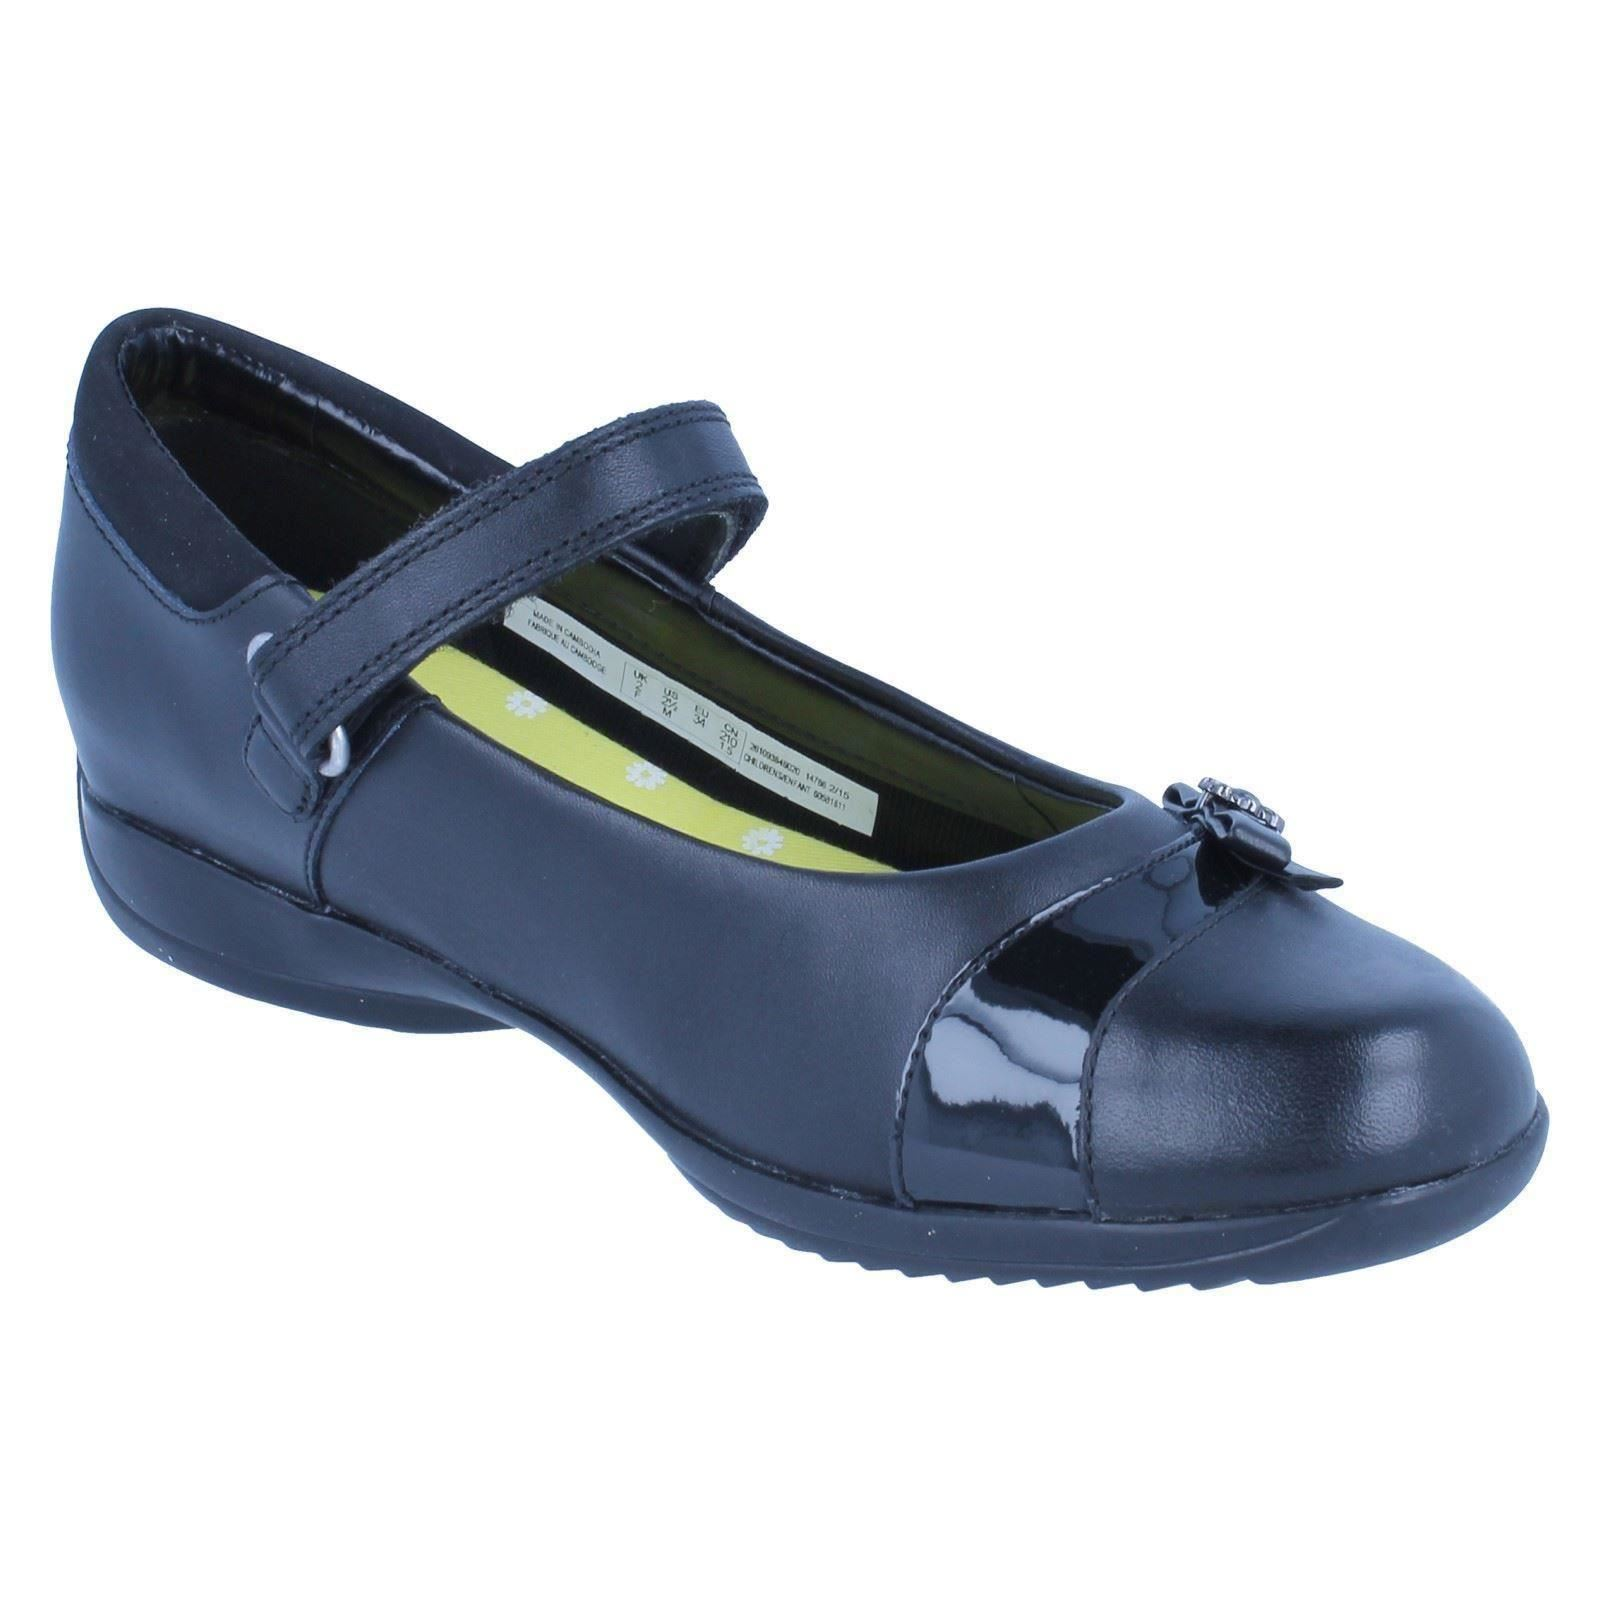 Girls Clarks Shoes Style - Daisy Beth